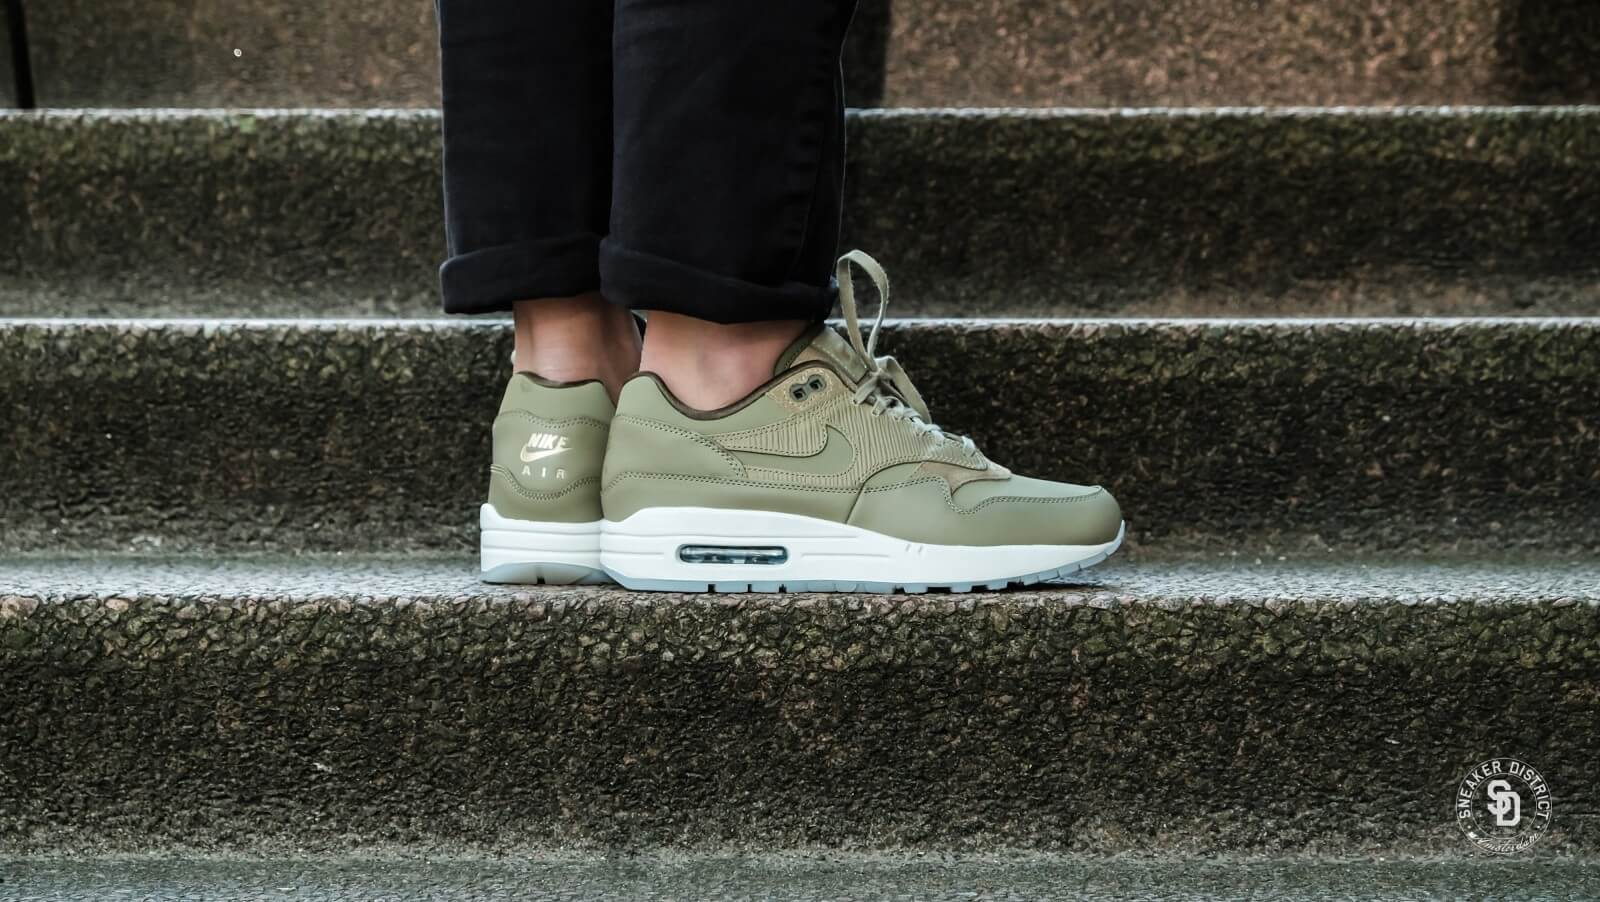 Nike Air Max 1 Leather Premium Medium Grey & Gum | Nike